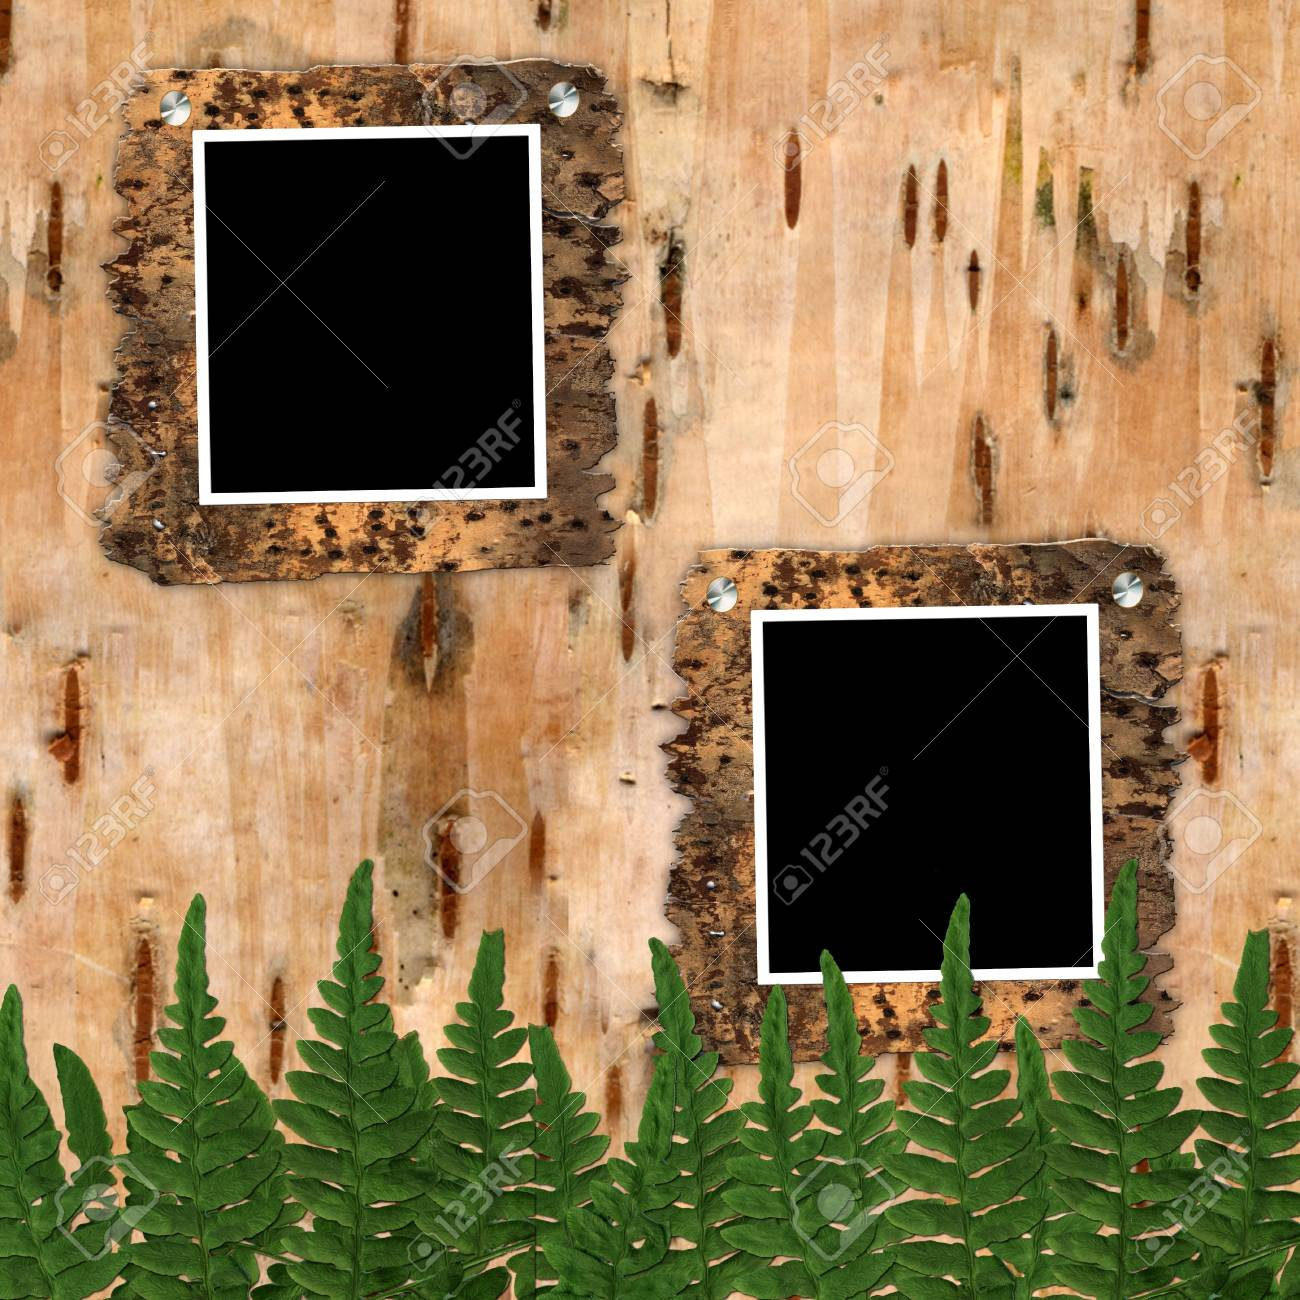 Two frame to birchen bark with fern's leaves Stock Photo - 3960499